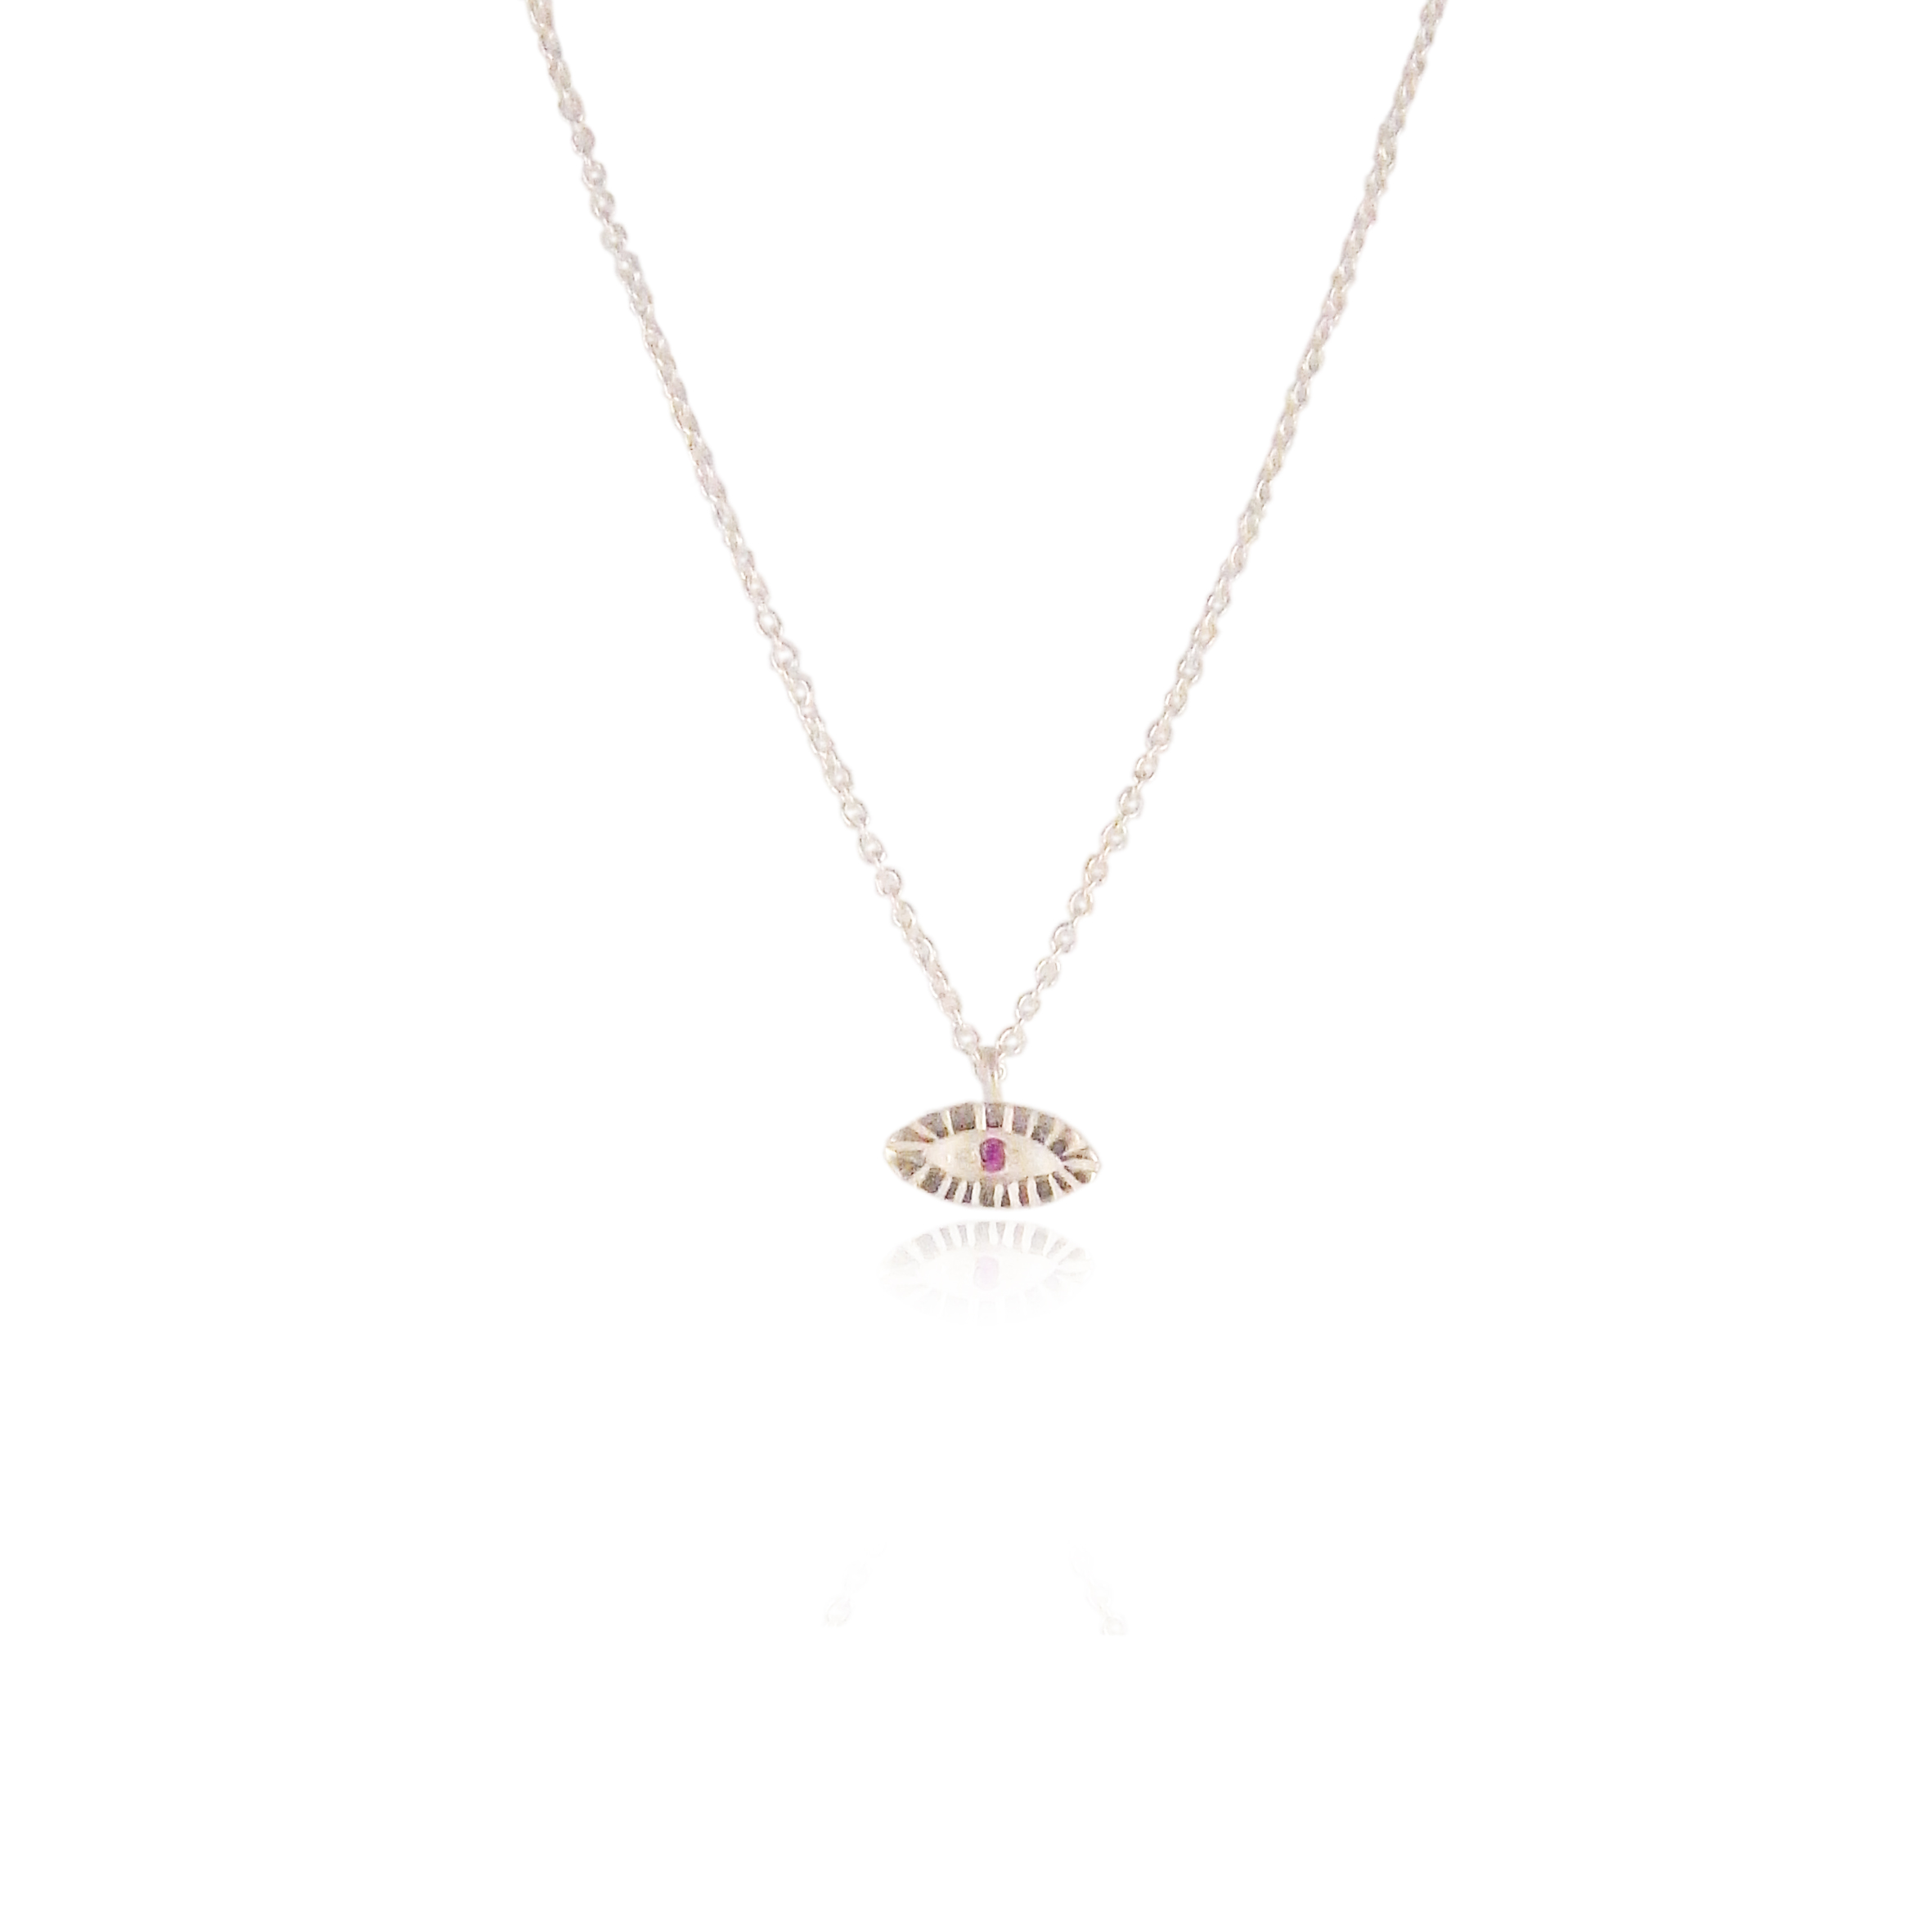 Momocreatura tiny ruby necklace silver.jpg